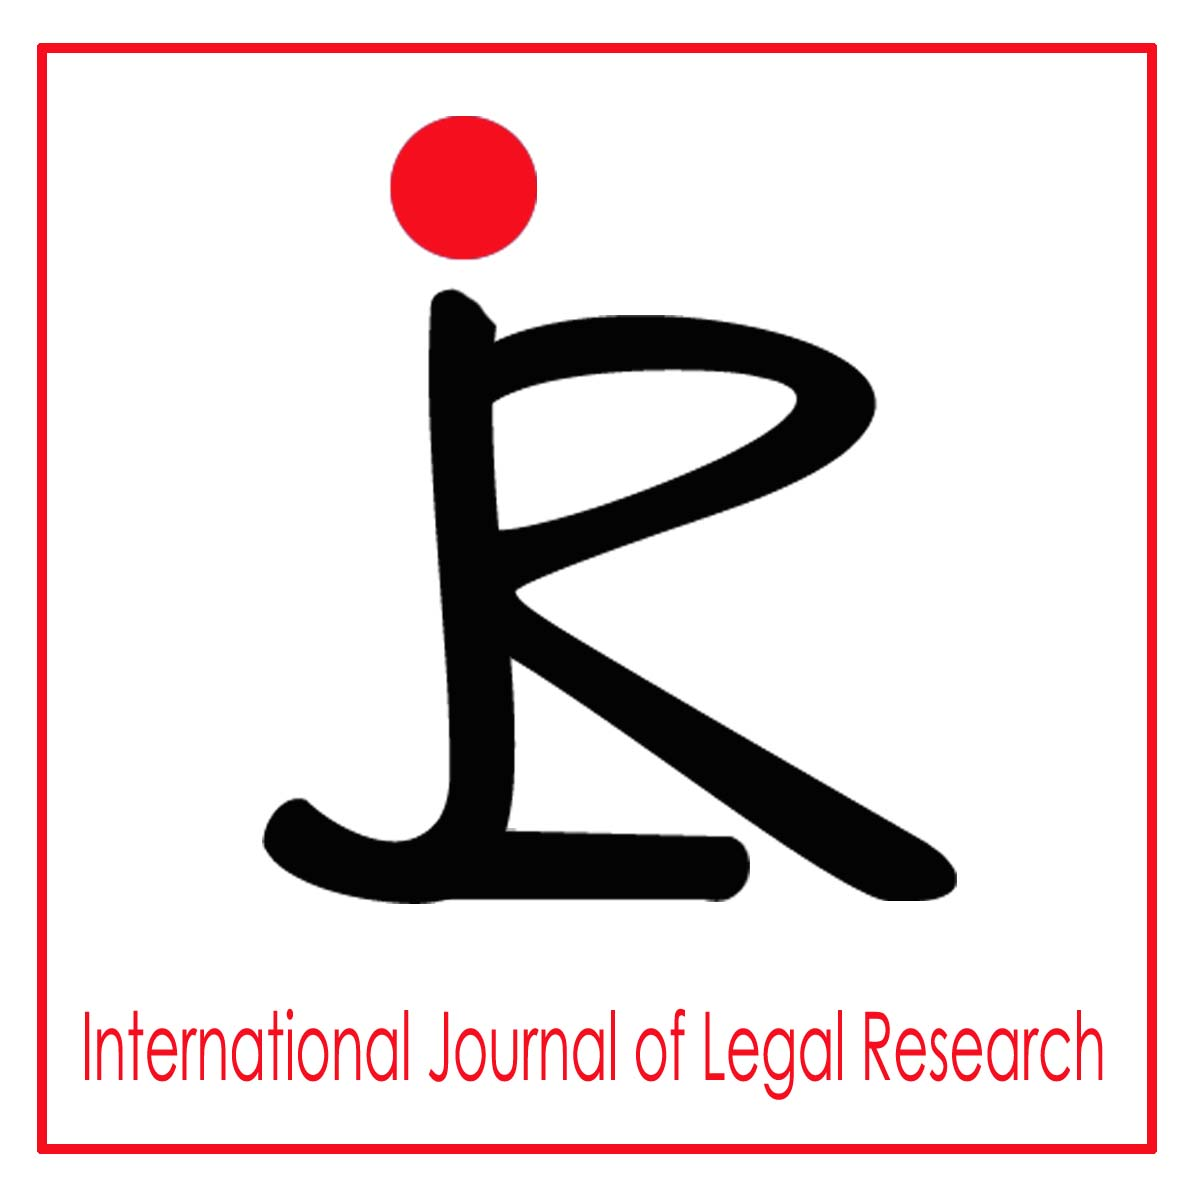 CfP: International Journal of Legal Research Volume 6, Issue 1: Publication Fee Rs. 1600; Submit by Aug 20